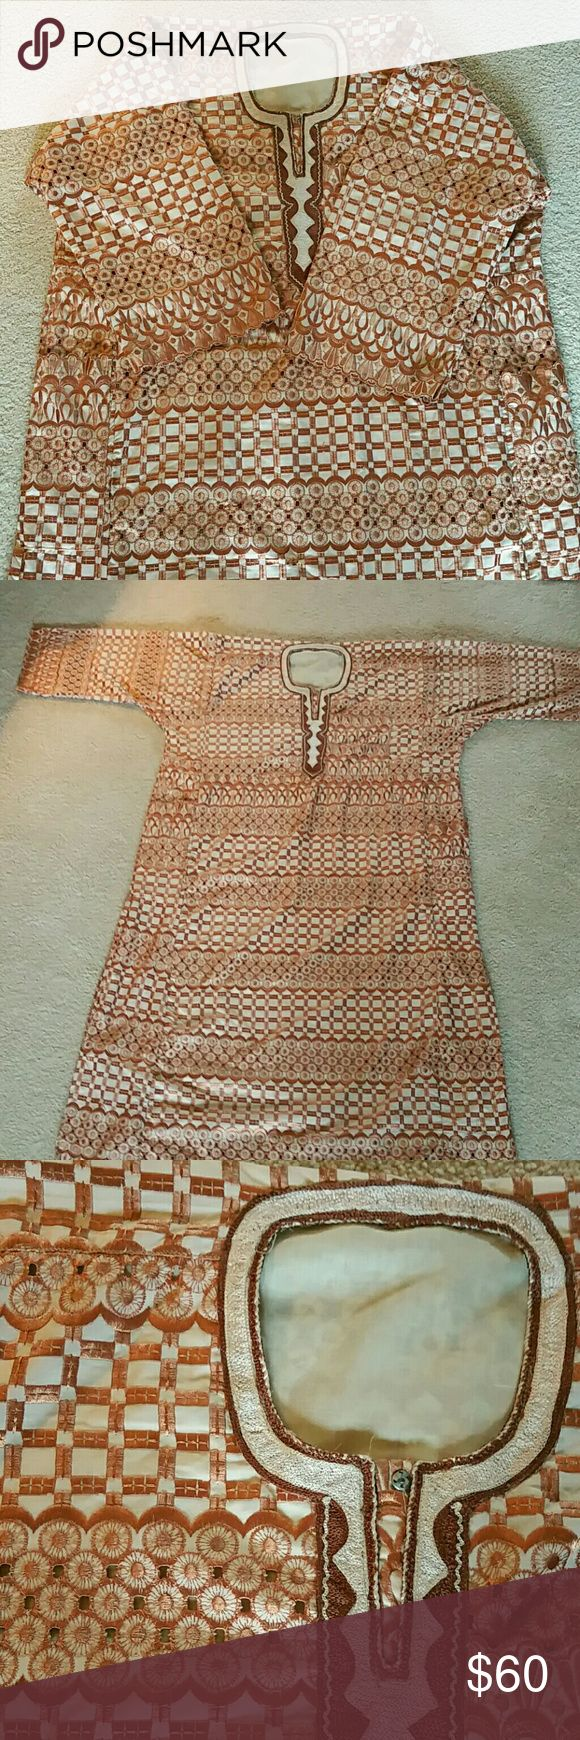 ANKARA African Men's Outfit Full length Shirt and pants set Gold Bronze Baroque thread. Purchased in Africa. NEW Other